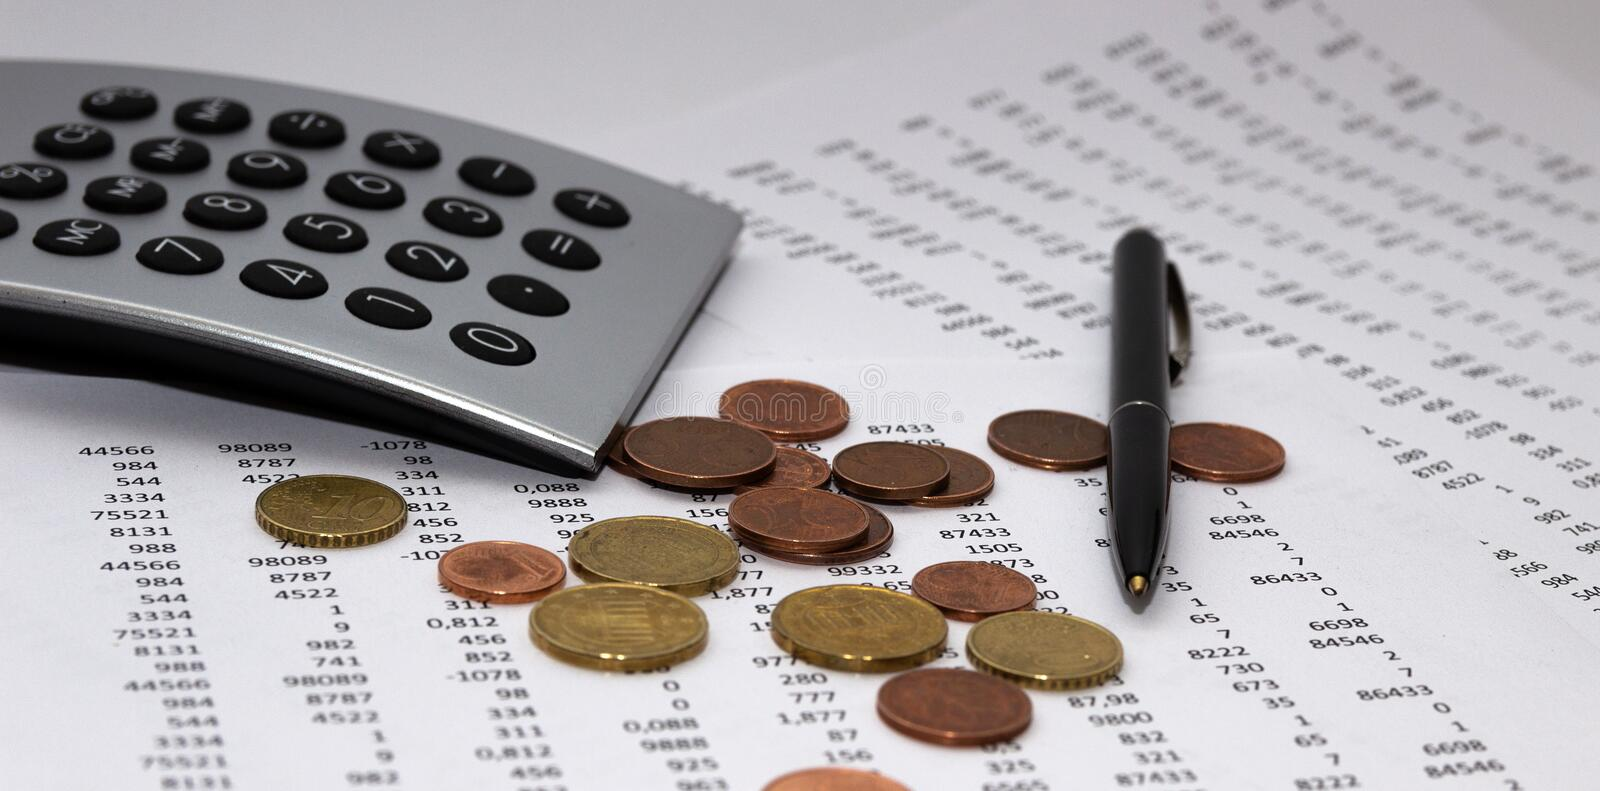 Financial accounting, Image a plurality of numbers on paper and calculator, coins. Financial accounting, Image a plurality of numbers on paper and calculator stock photos